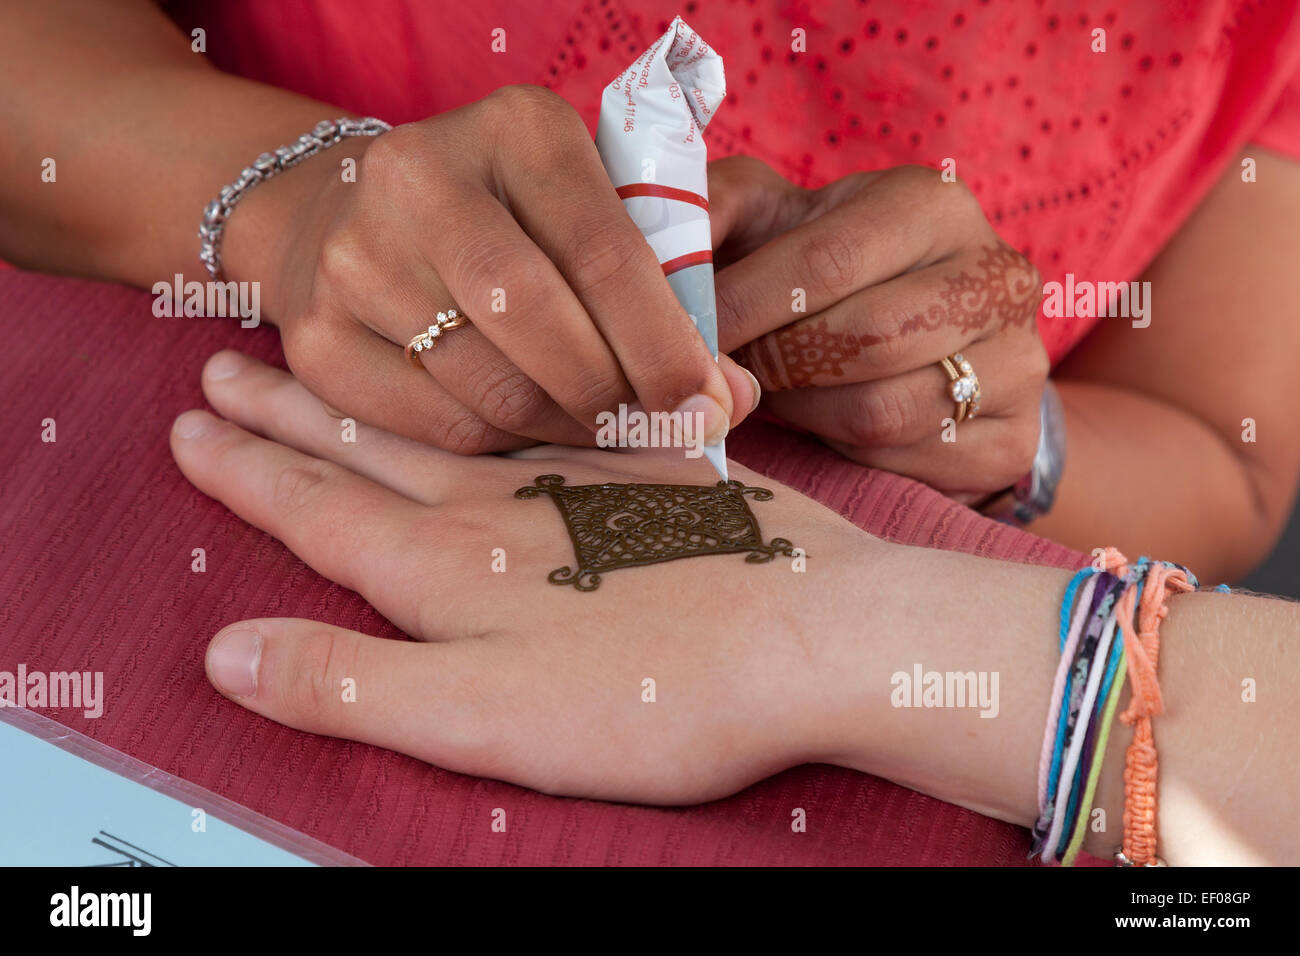 Traditional henna painting on a hand - Stock Image